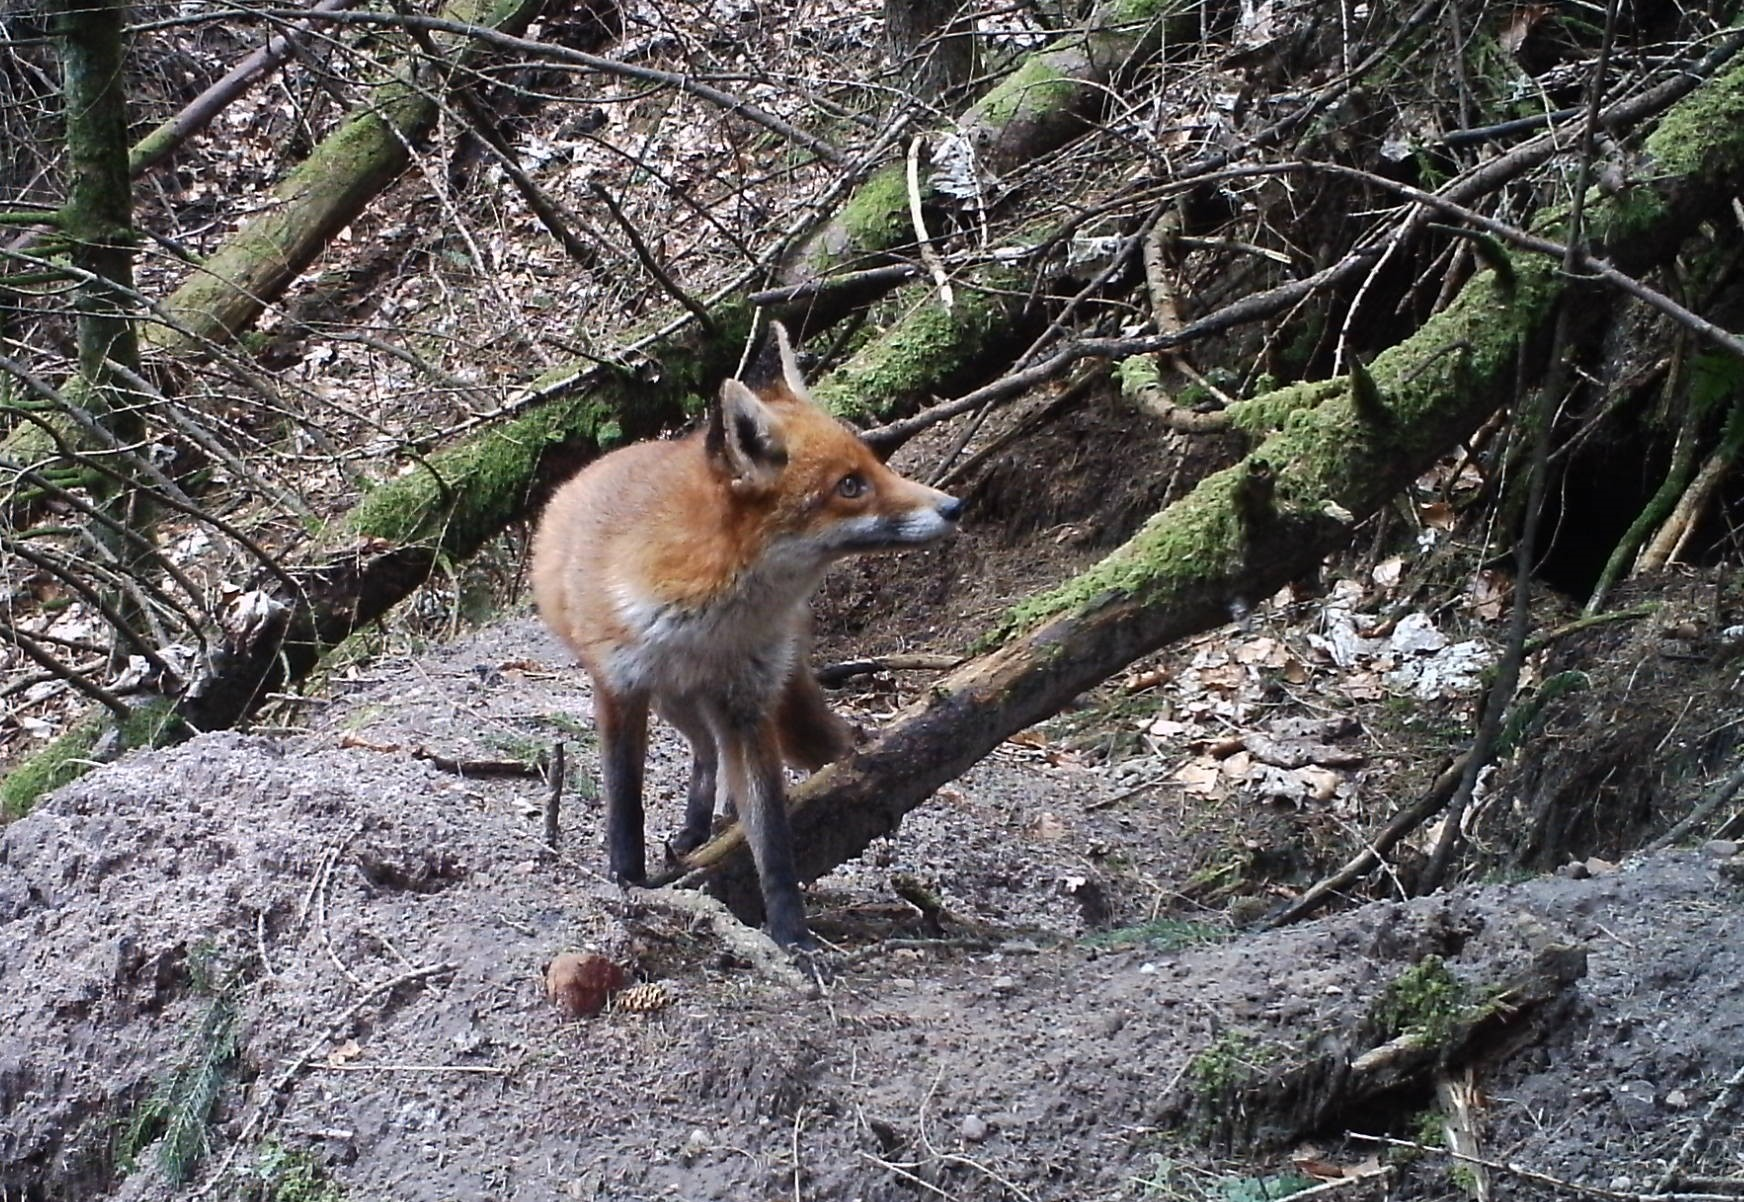 A picture taken with Keith's foxcam.